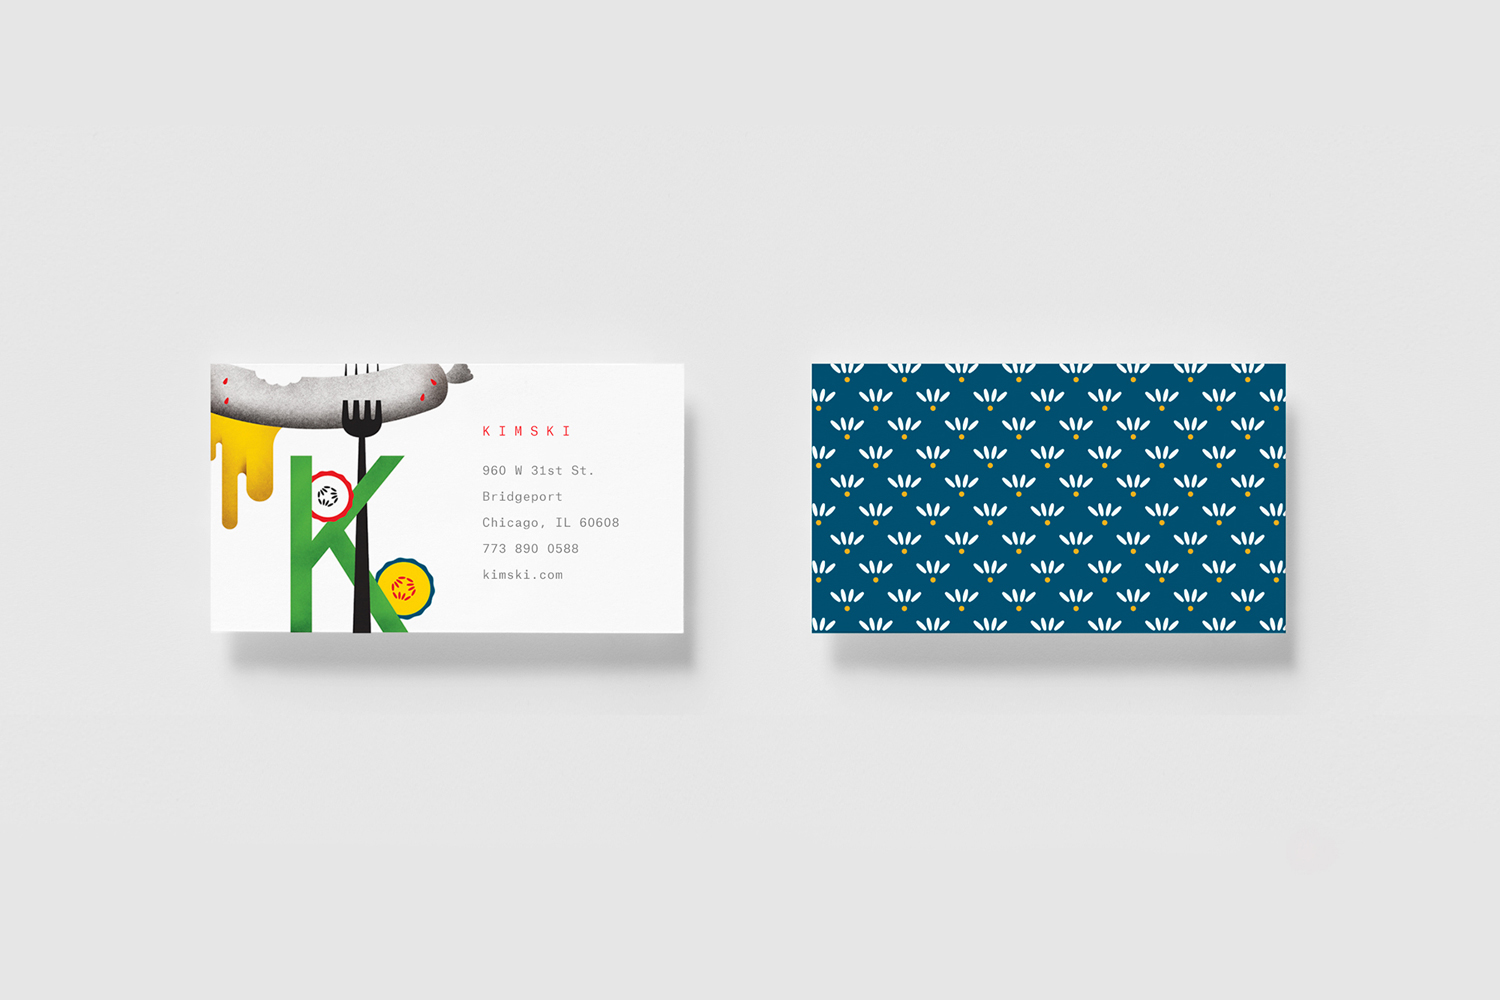 Brand identity, illustration and business cards by New York graphic design studio Franklyn for Chicago's Korean Polish street food restaurant Kimski